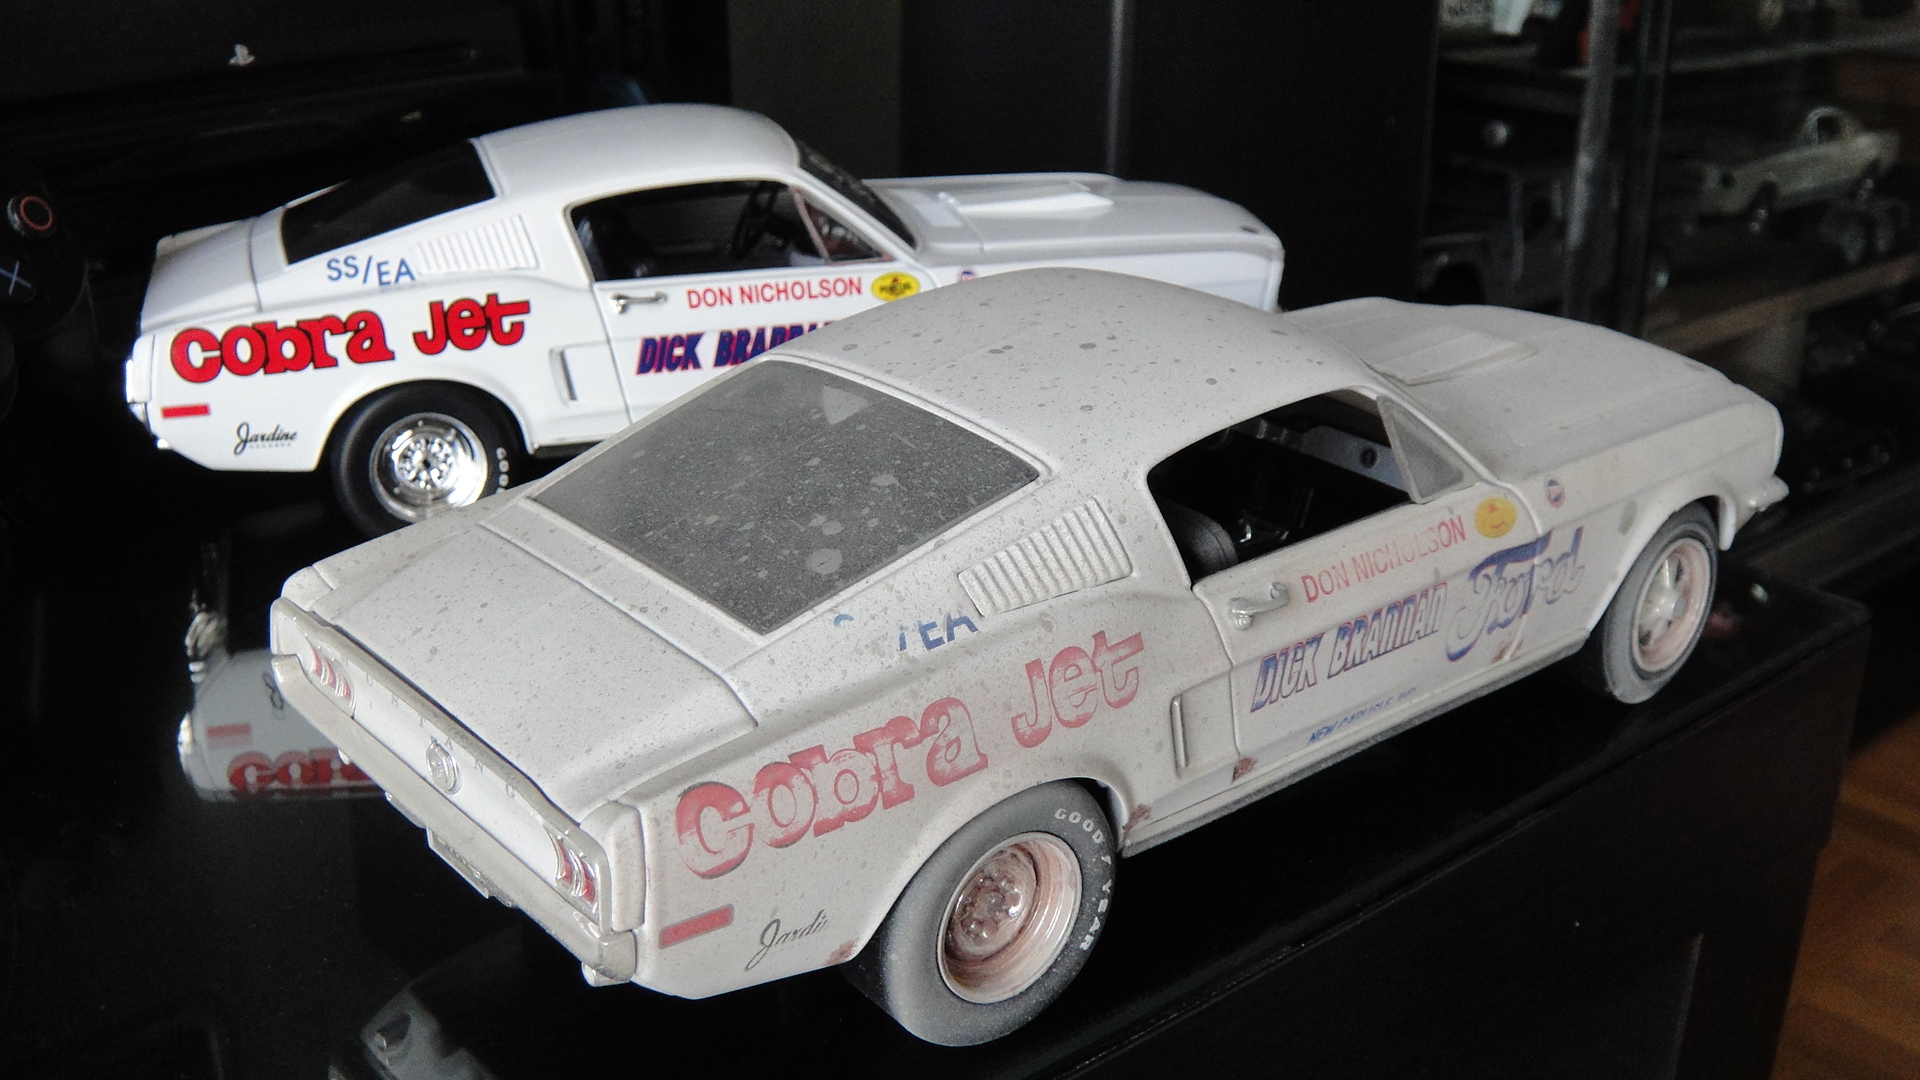 1-18_Dofre's Mustang (763)